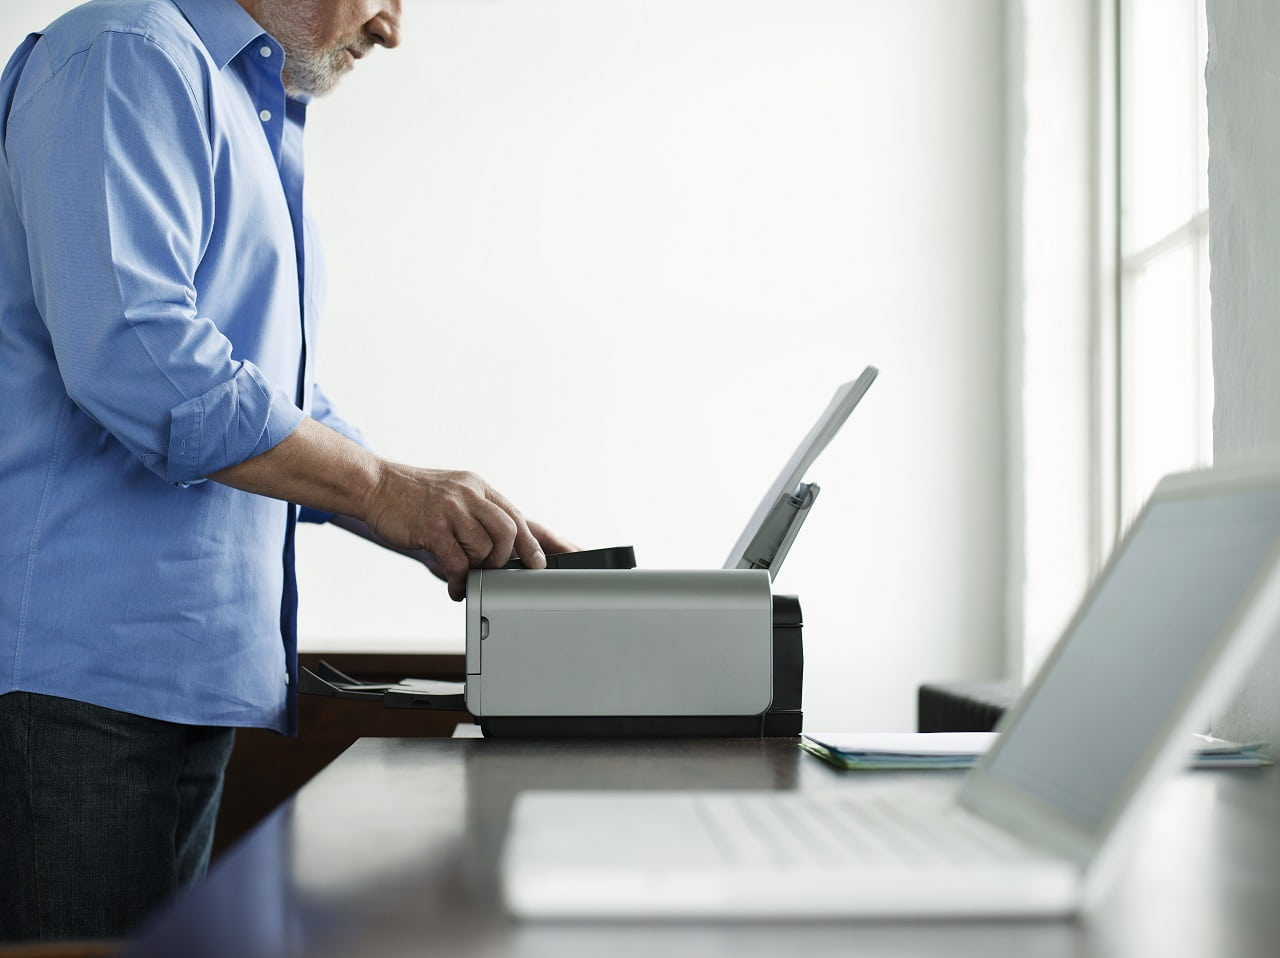 setup HP printer